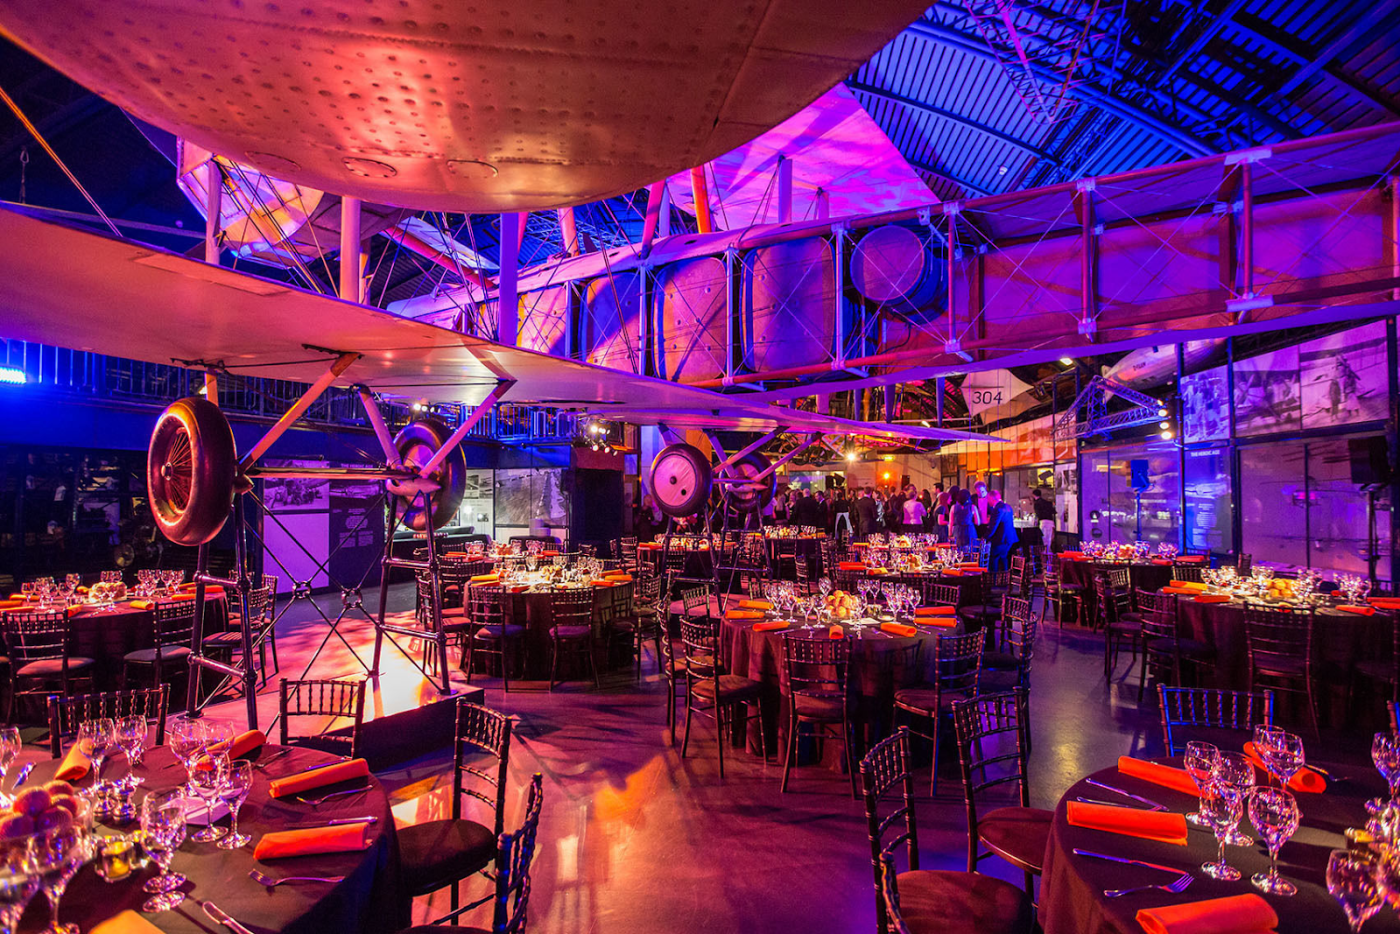 tables and chairs set up for a cabaret style event with a large plane hanging from the ceiling